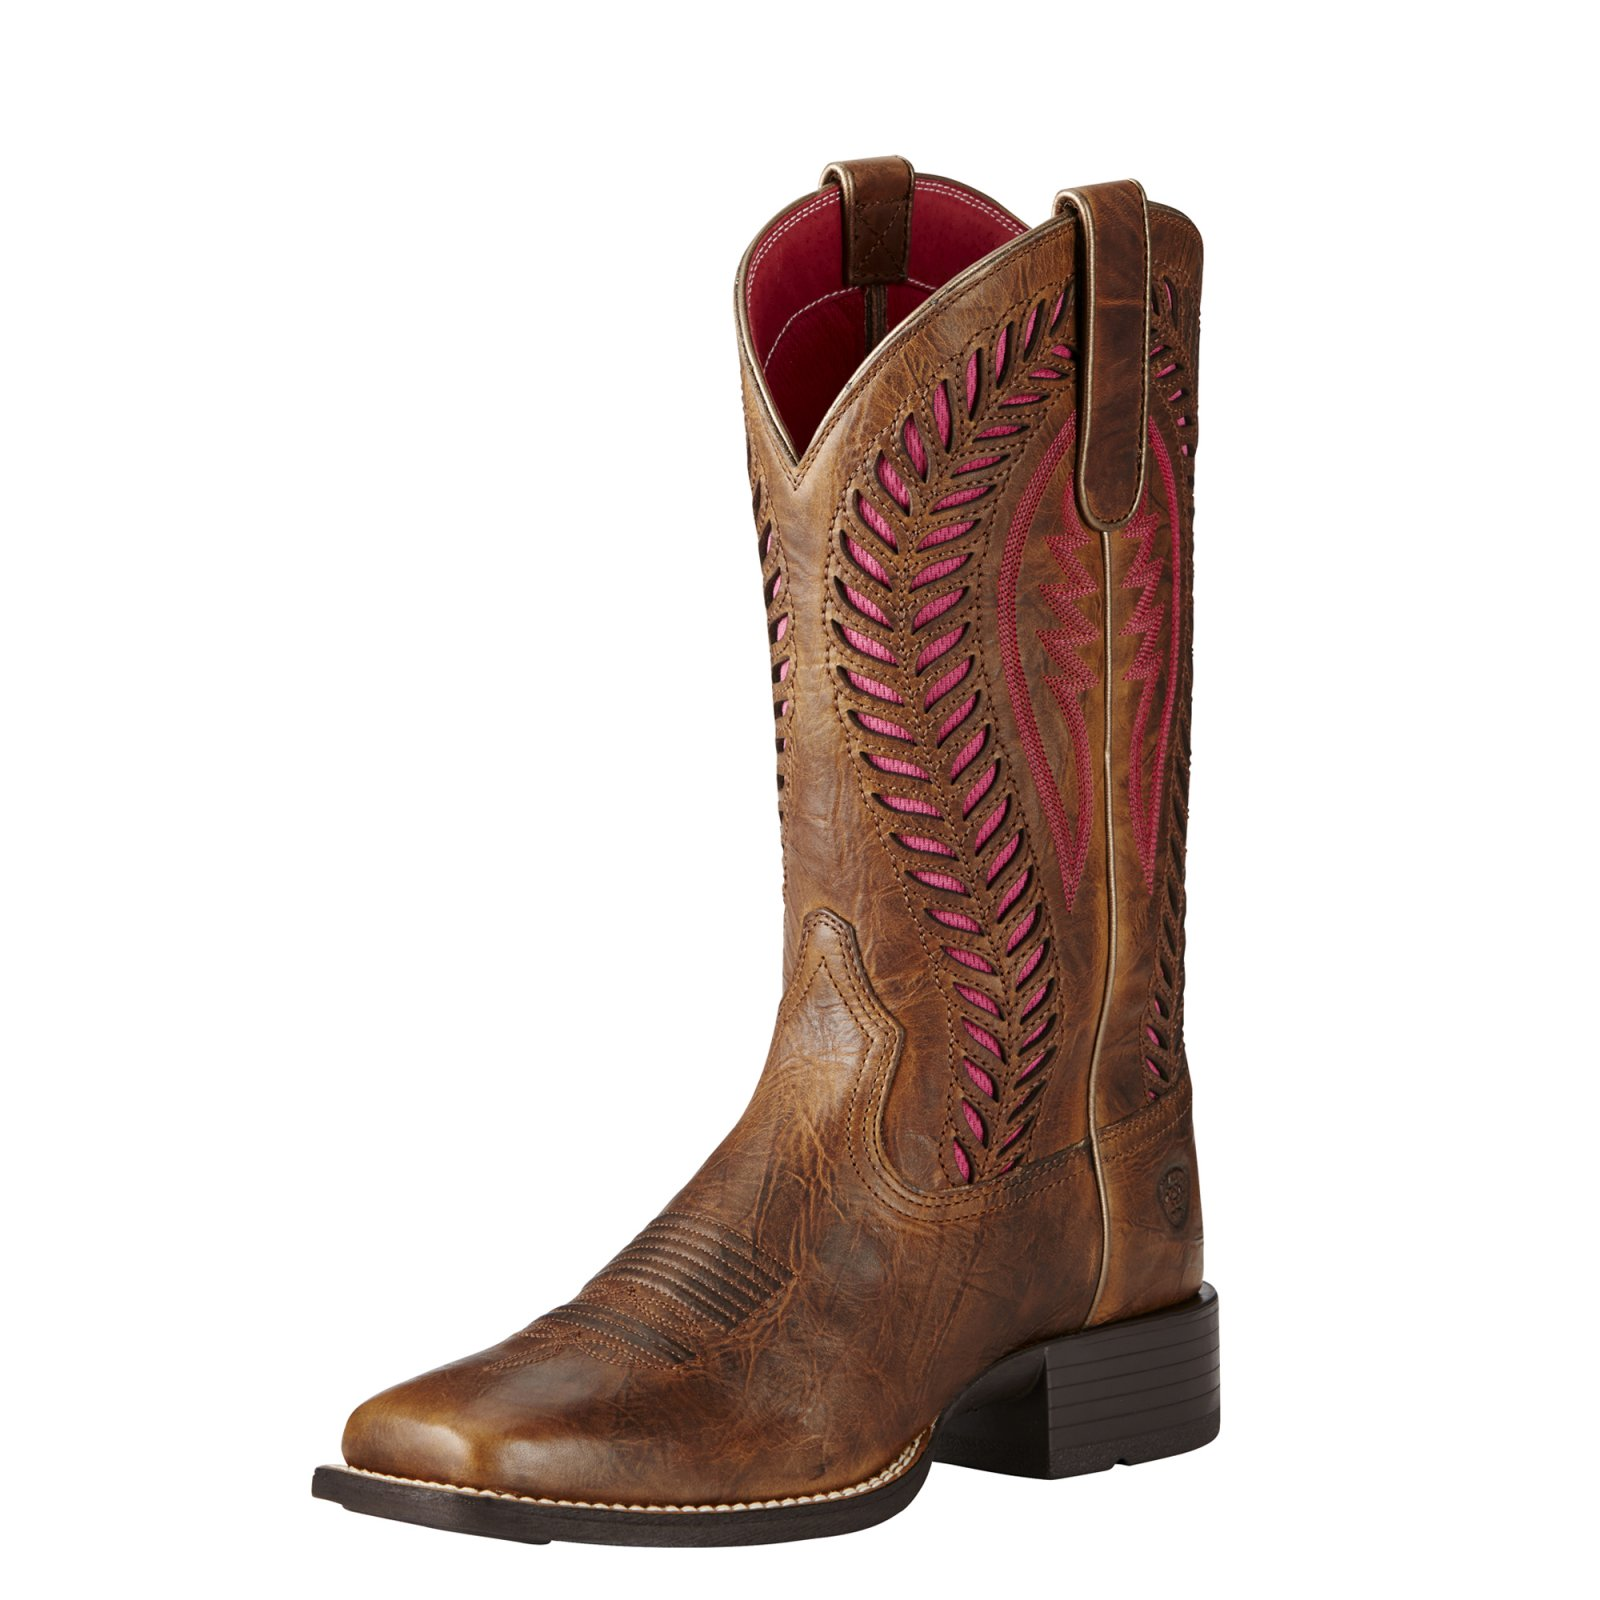 Quickdraw VentTek from Ariat